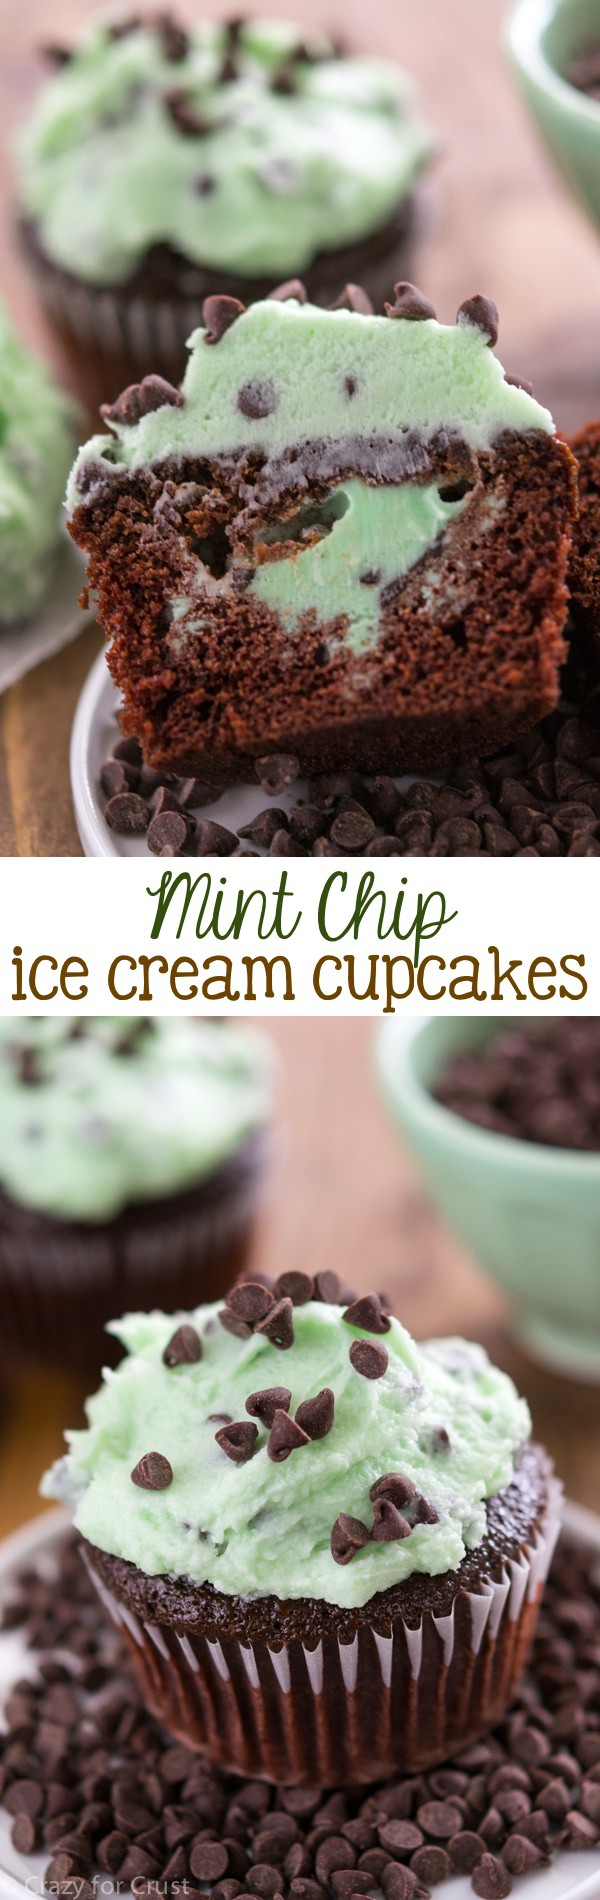 Mint Chip Ice Cream Cupcakes - fill chocolate cupcakes with mint chip ...